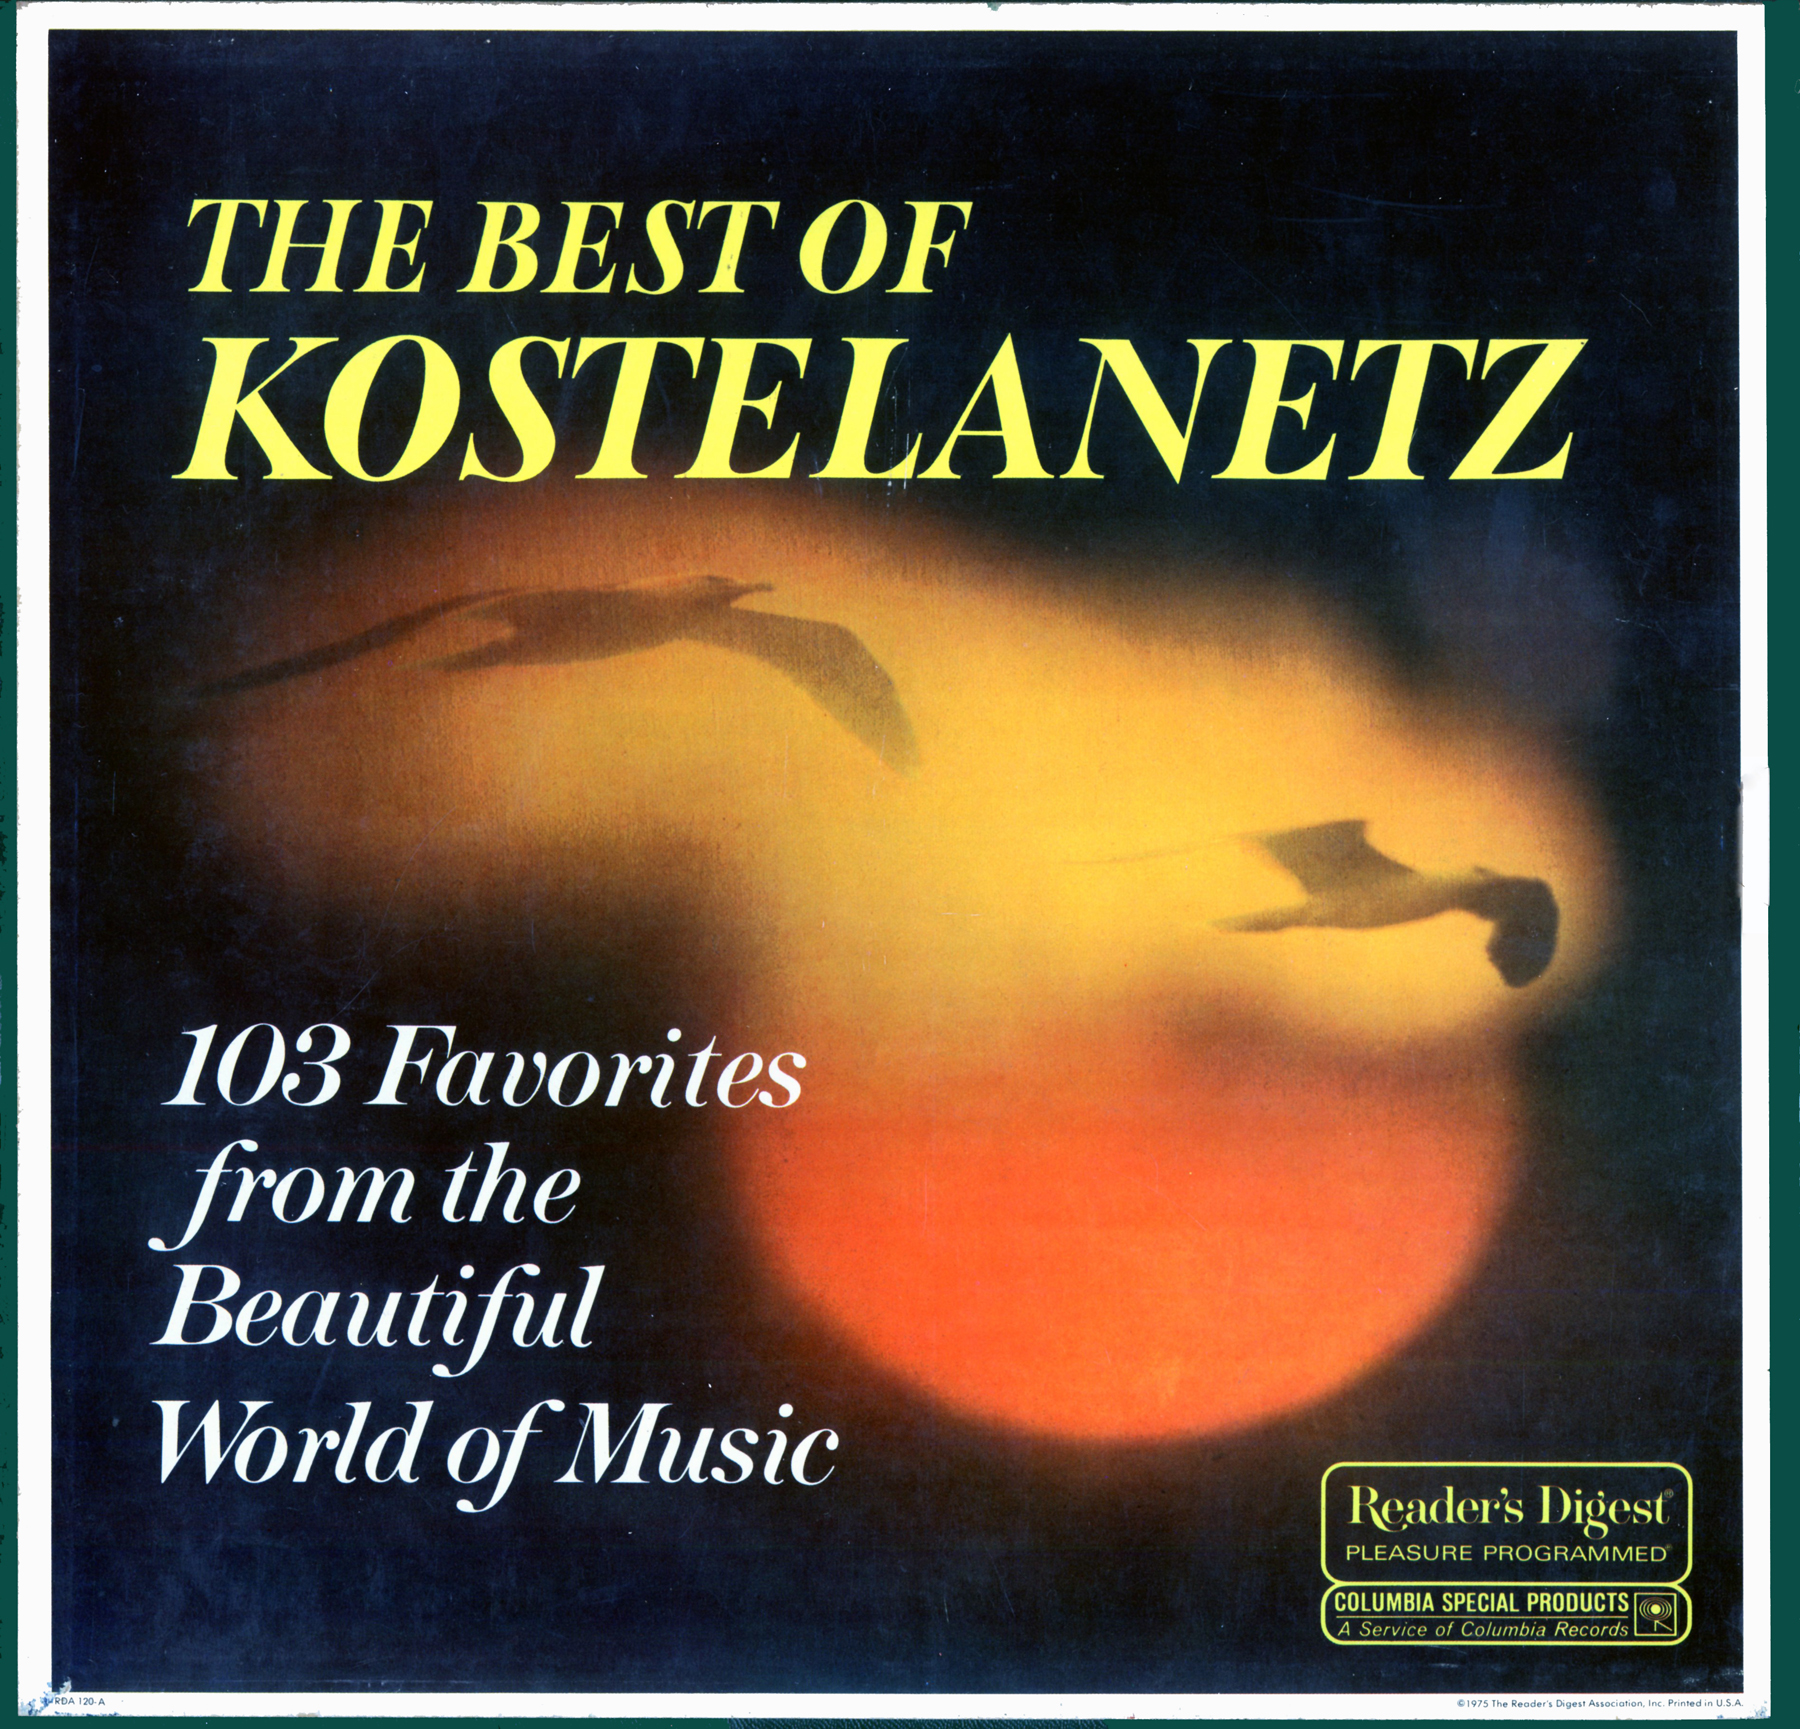 RDA120 - Best of Kostelanetz on CD